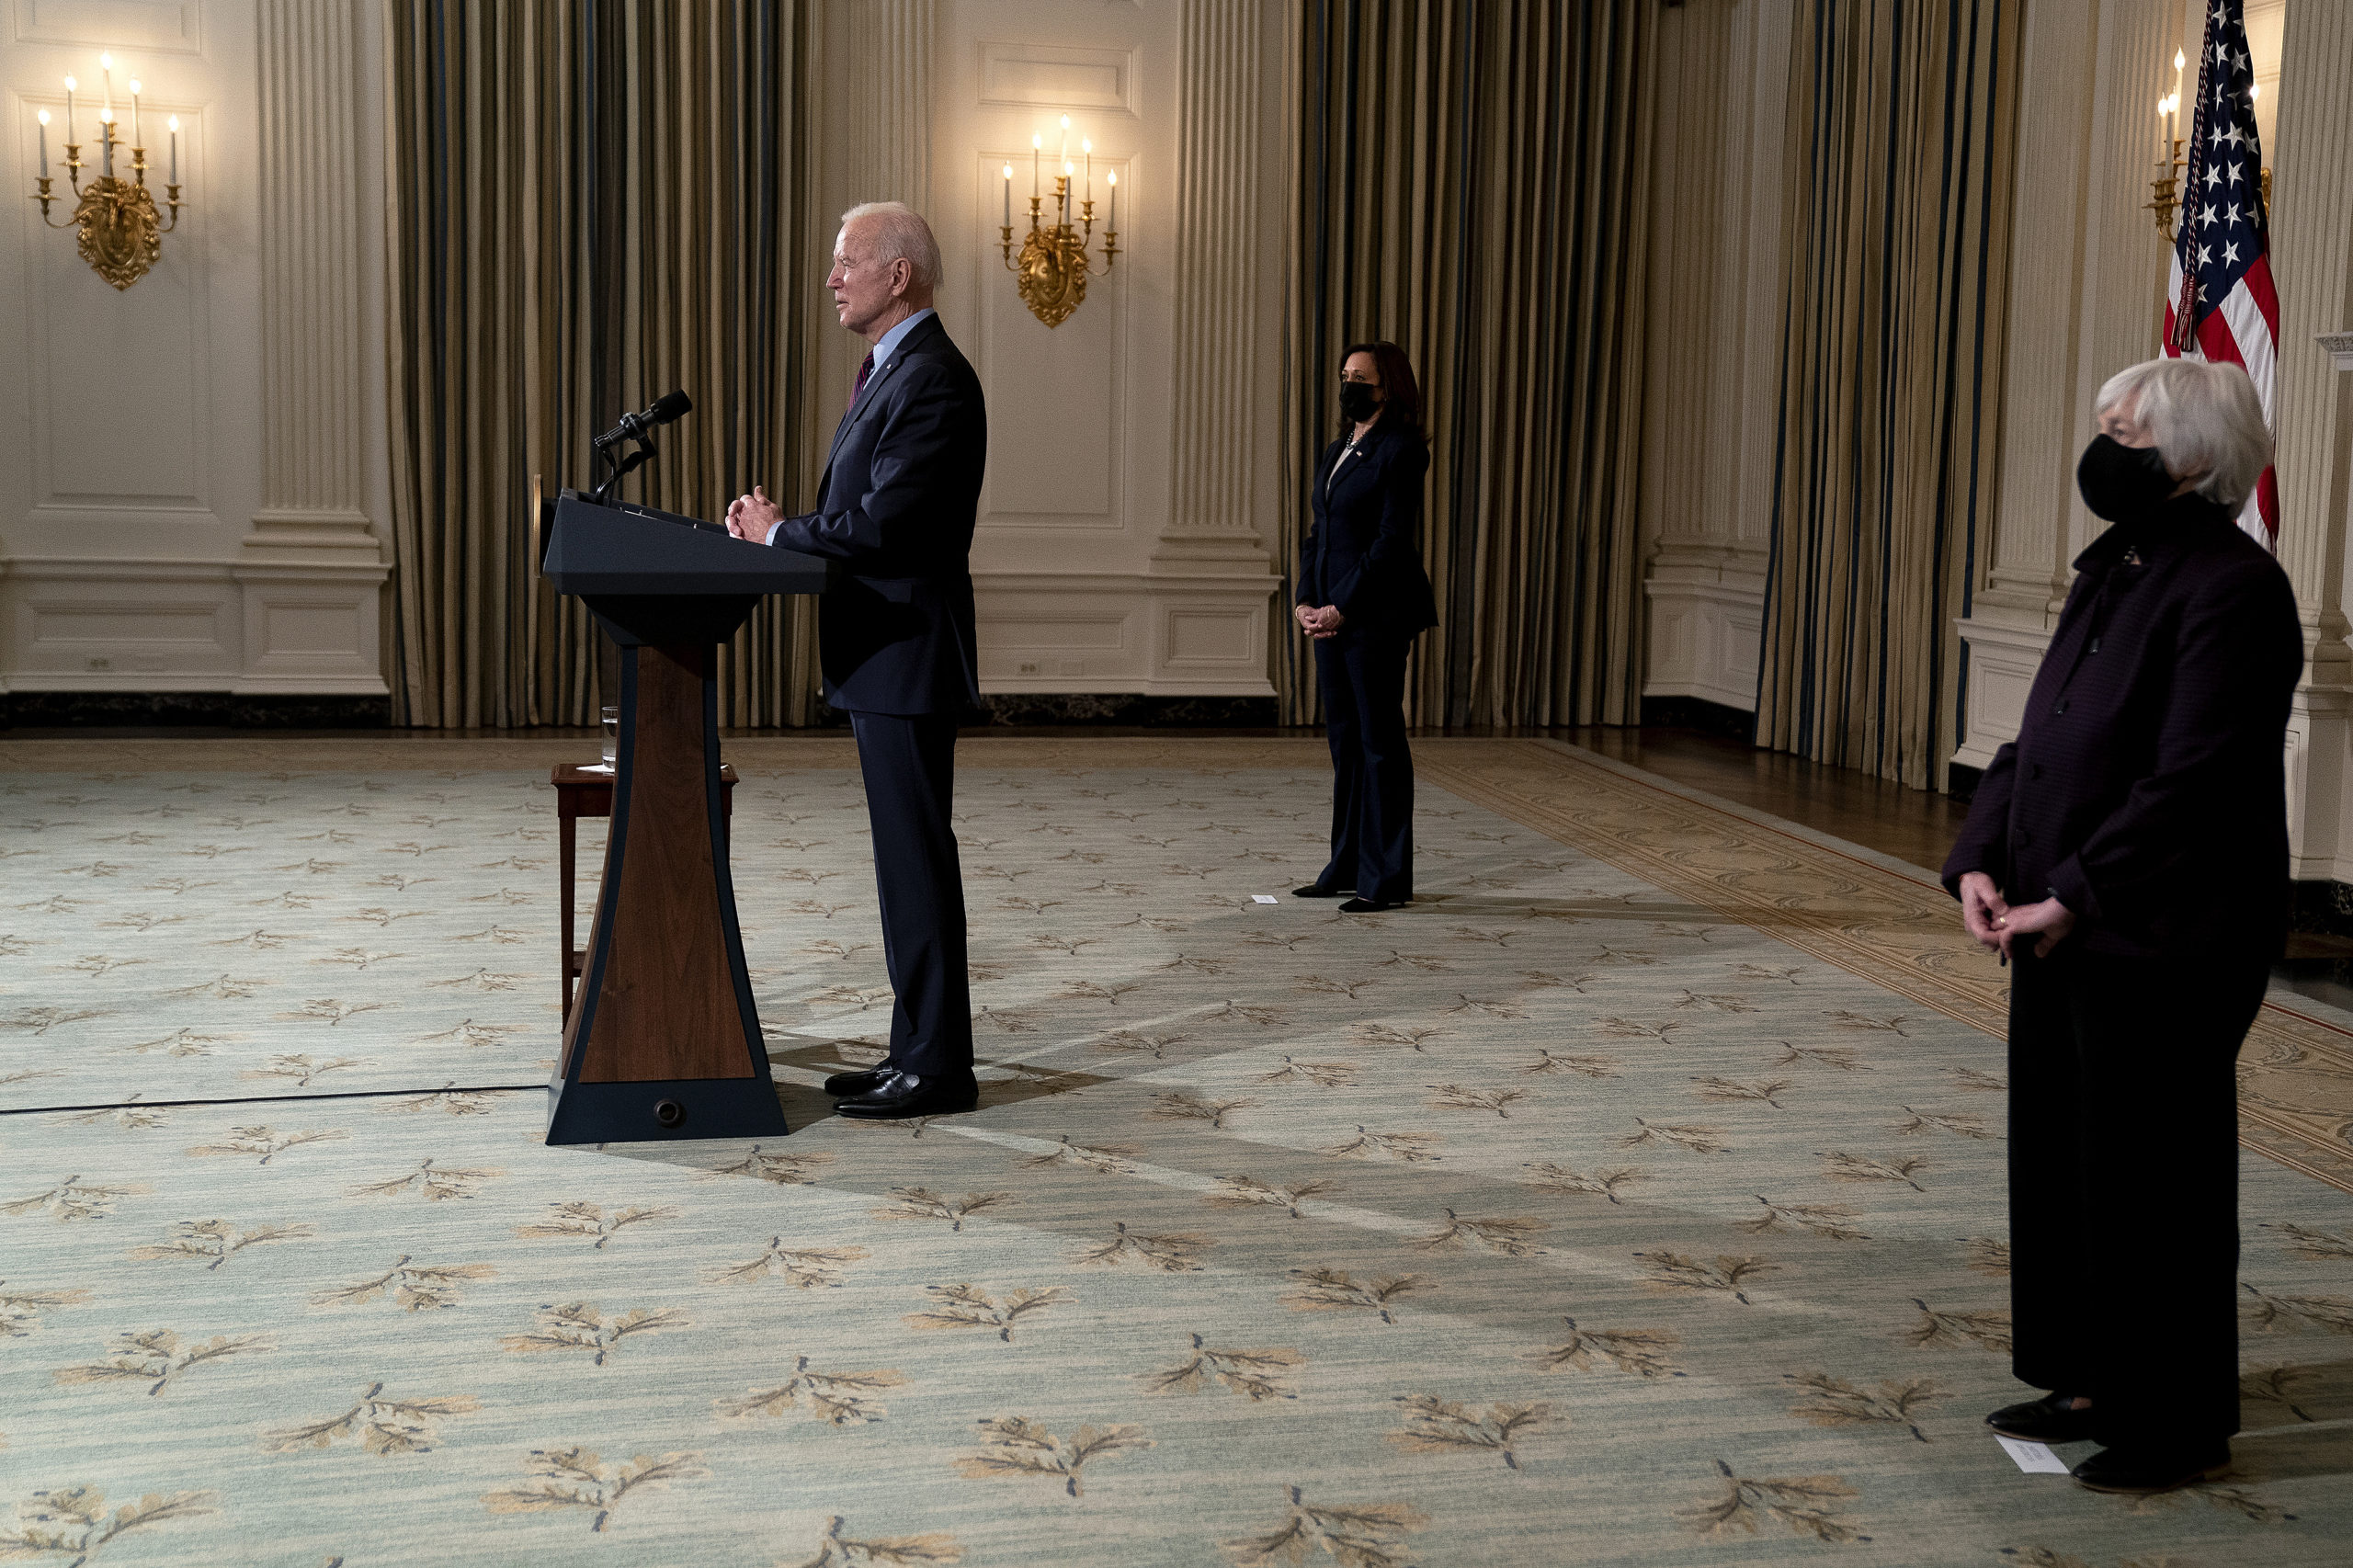 President Joe Biden delivers remarks on the economy with Vice President Kamala Harris and Treasury Sec. Janet Yellen on Friday. (Stefani Reynolds/Pool/Getty Images)